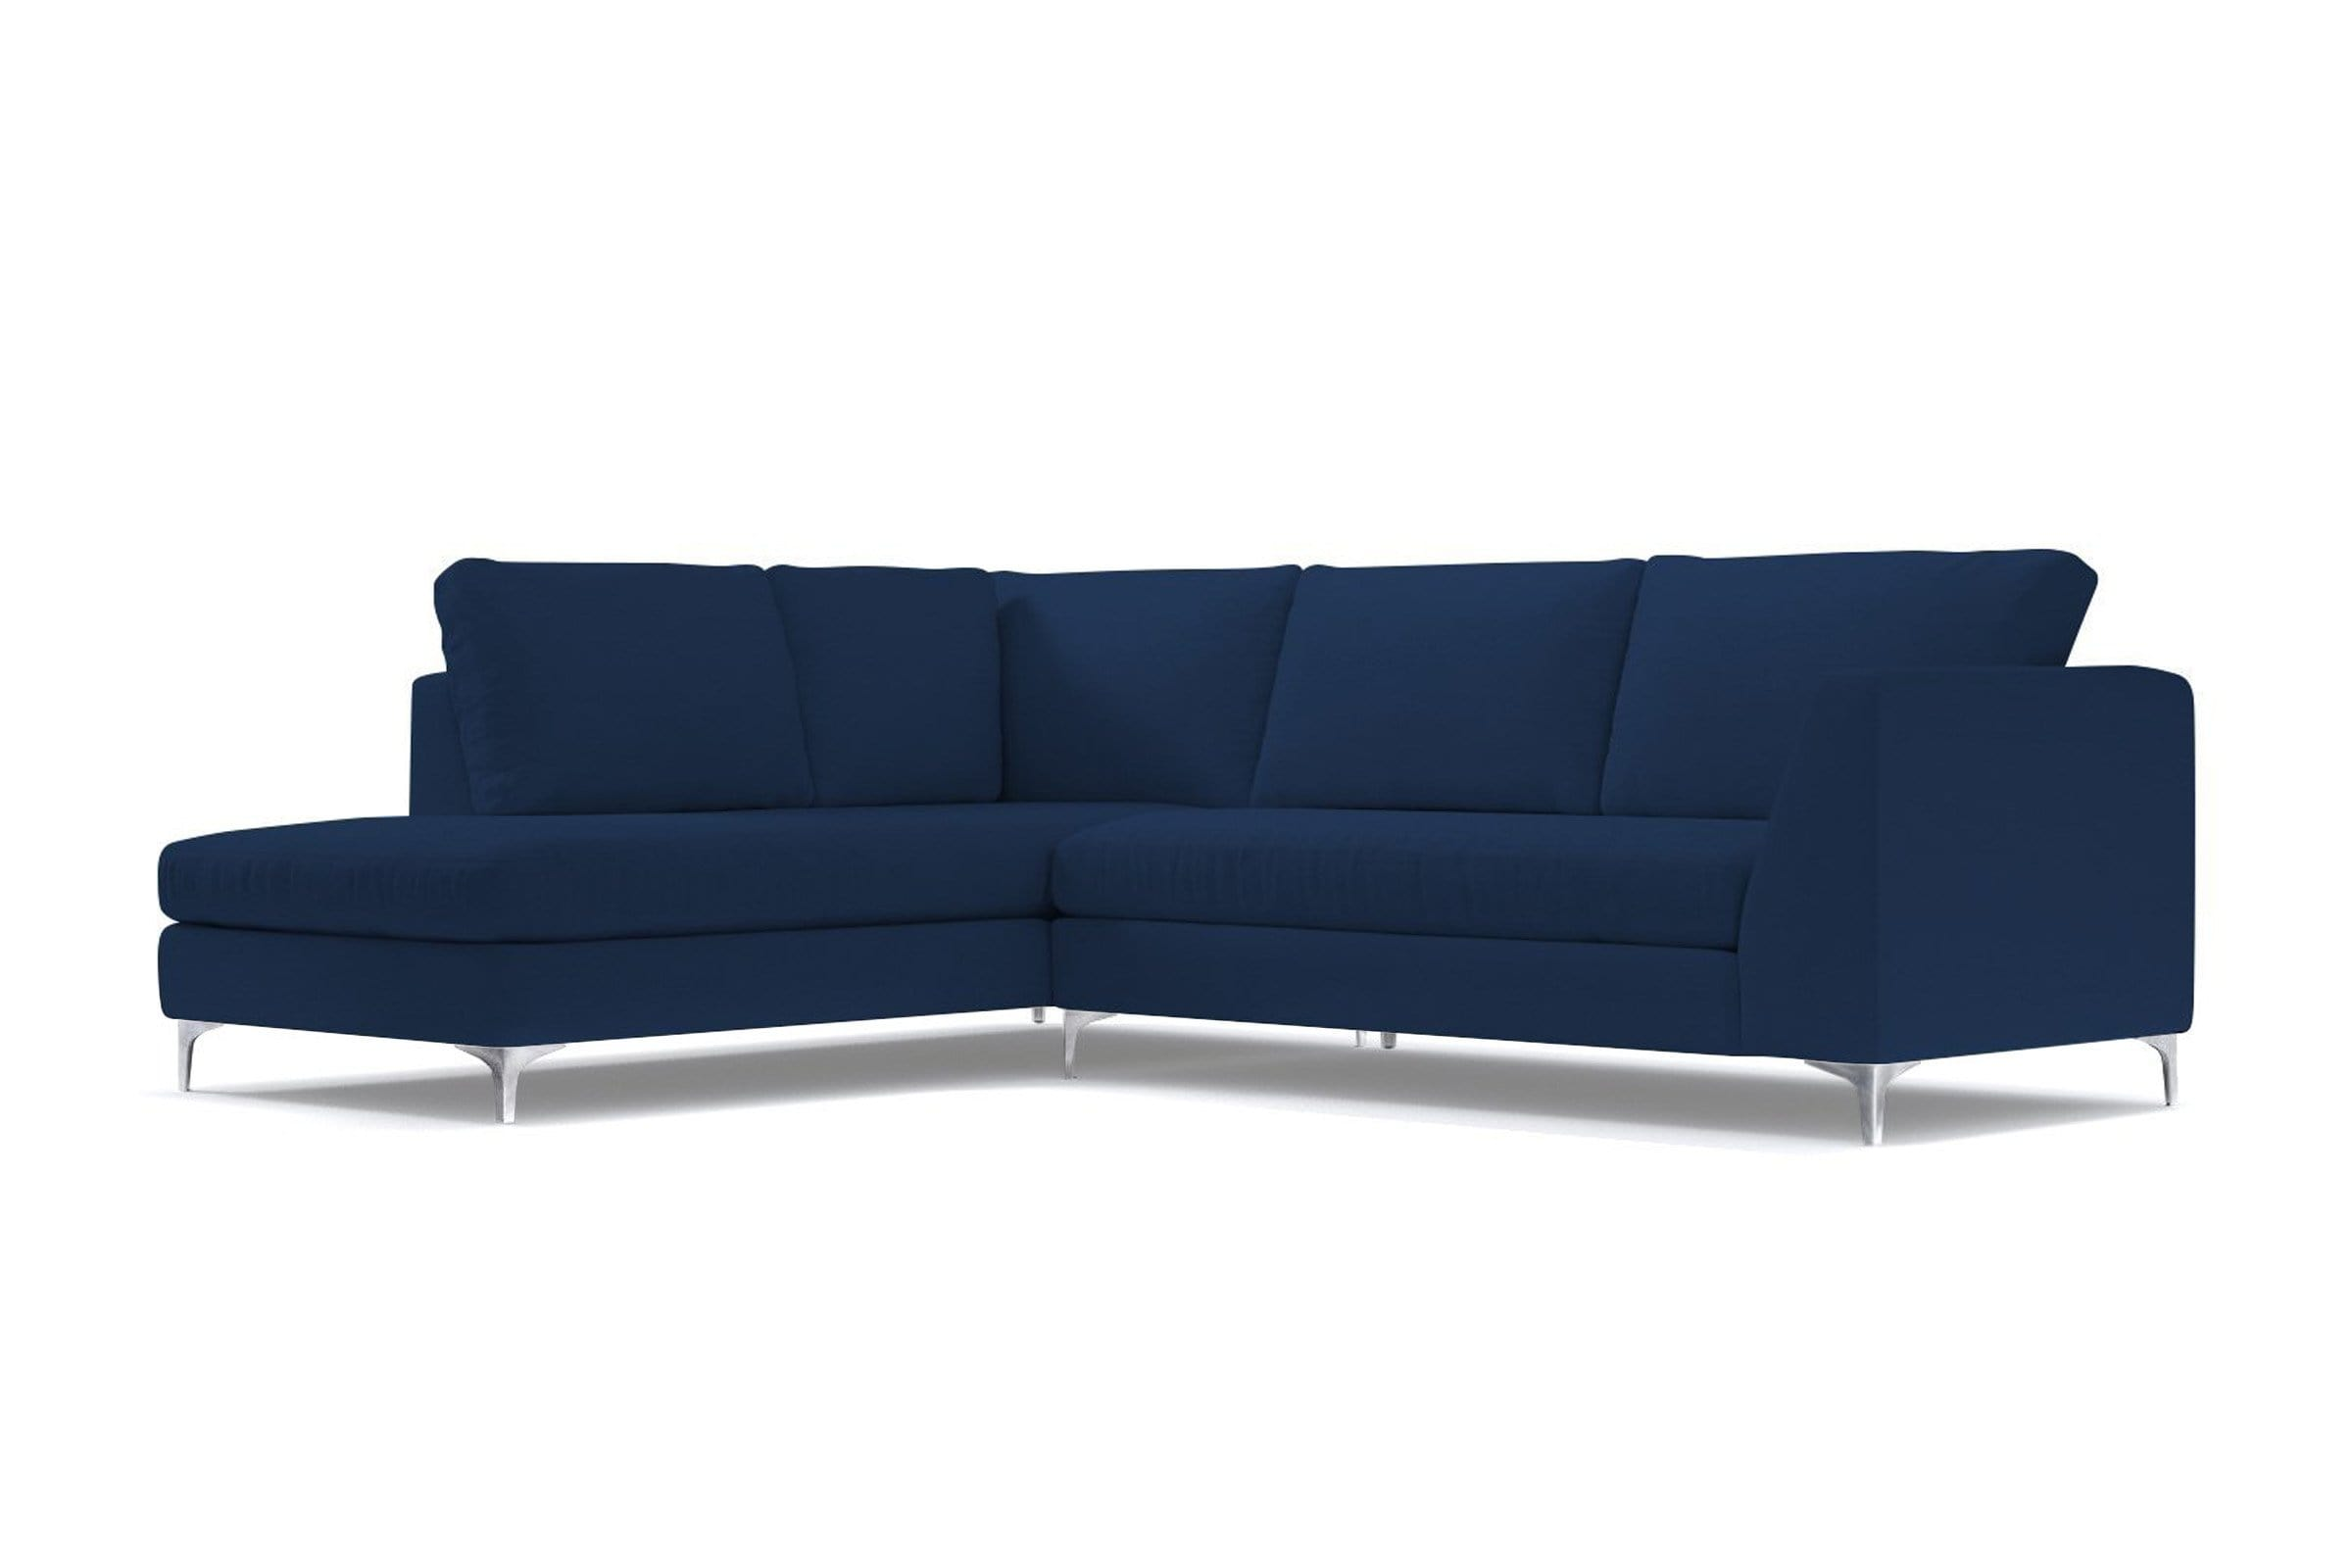 Mulholland 2pc Sectional Sofa - Blue Velvet - Modern Sectional Sofa Made in USA - Sold by Apt2B